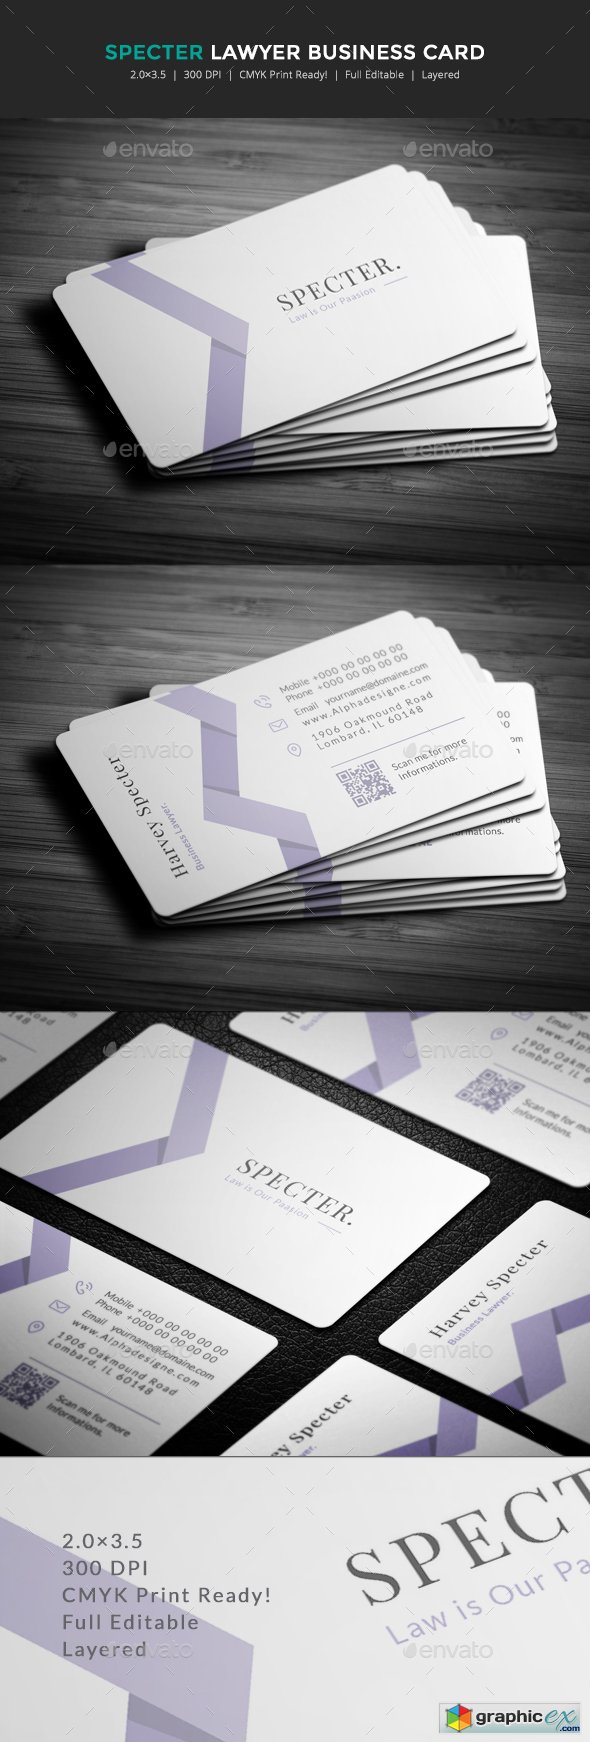 Specter lawyer business card free download vector stock image specter lawyer business card reheart Gallery